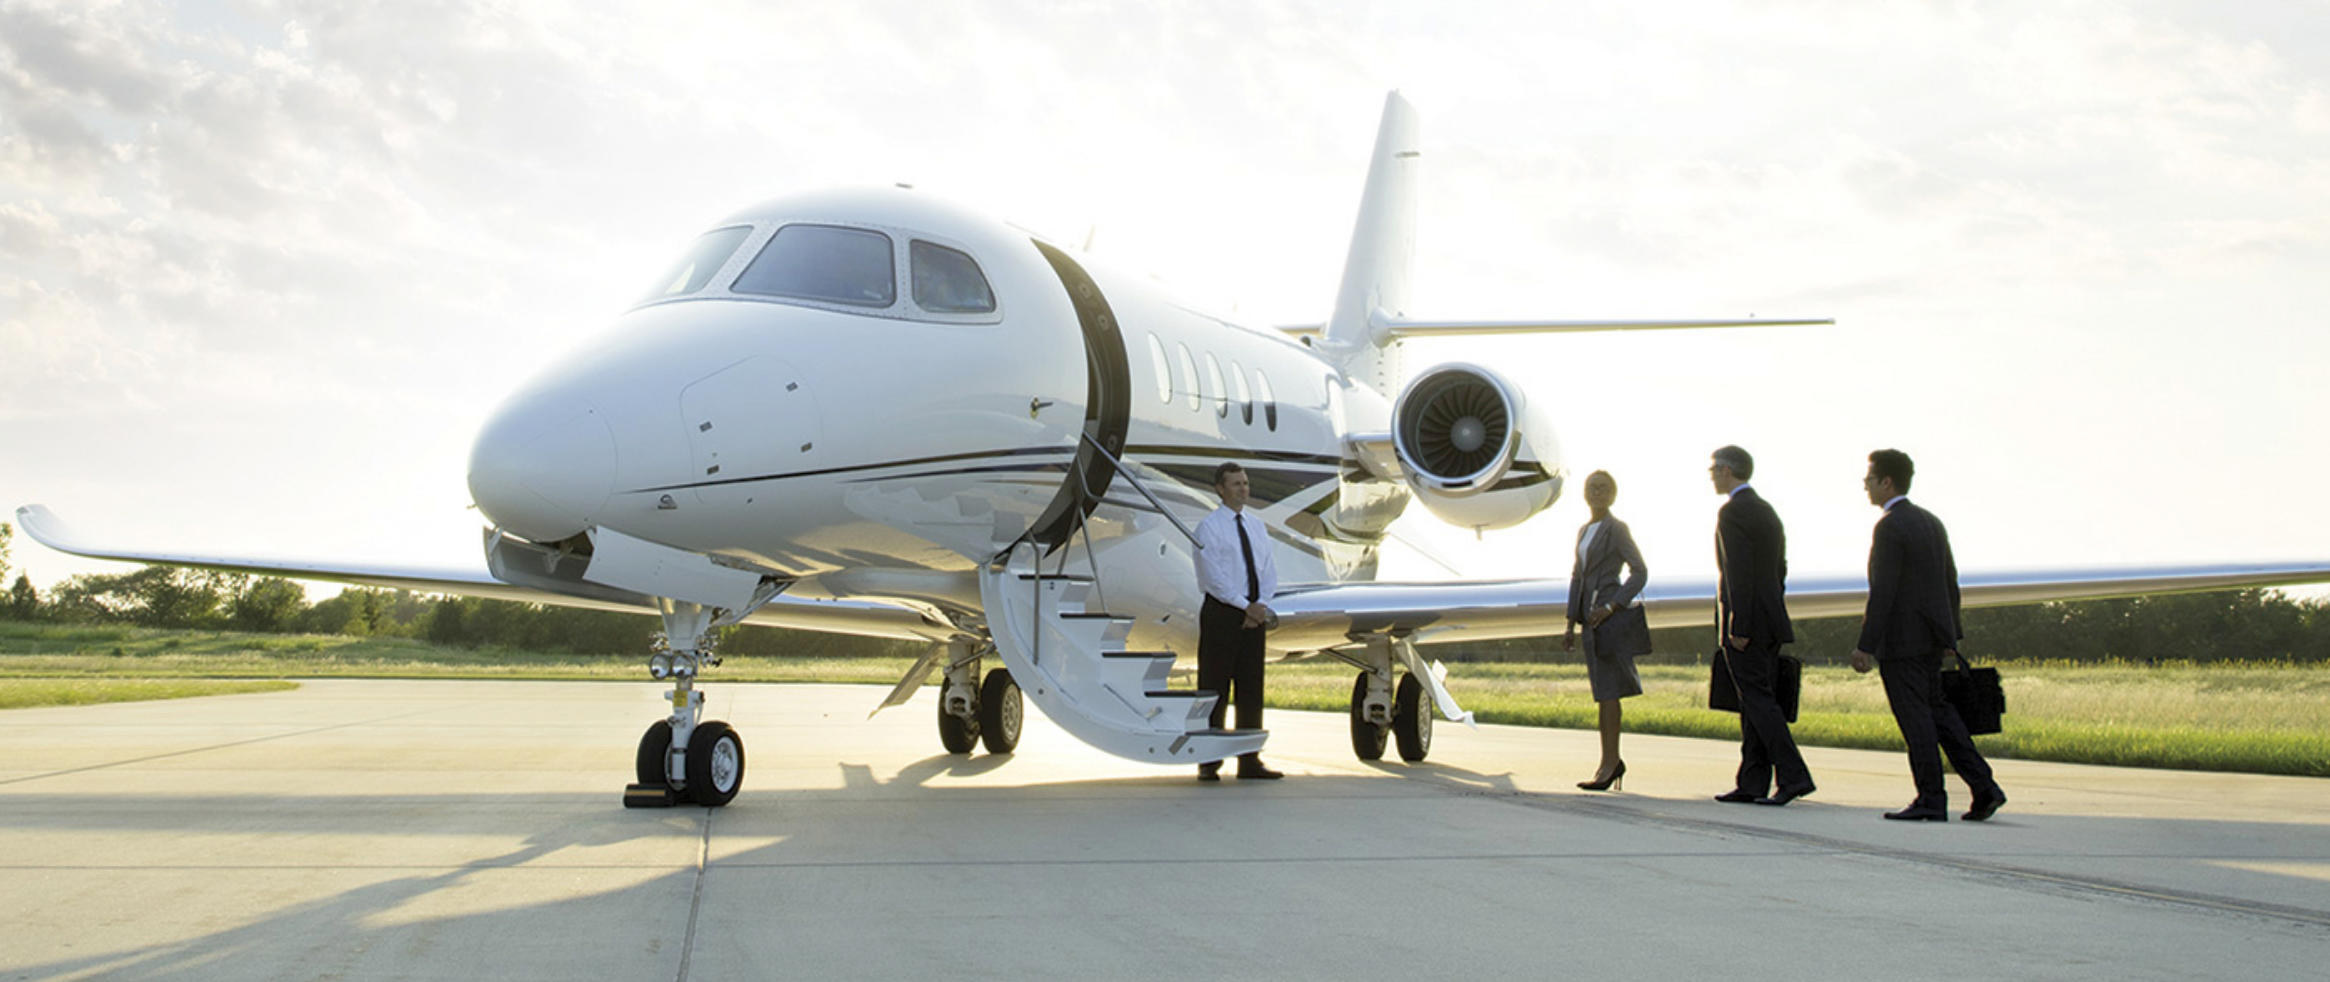 Executive jet charter service will save time and money, adding to your company's bottom line.